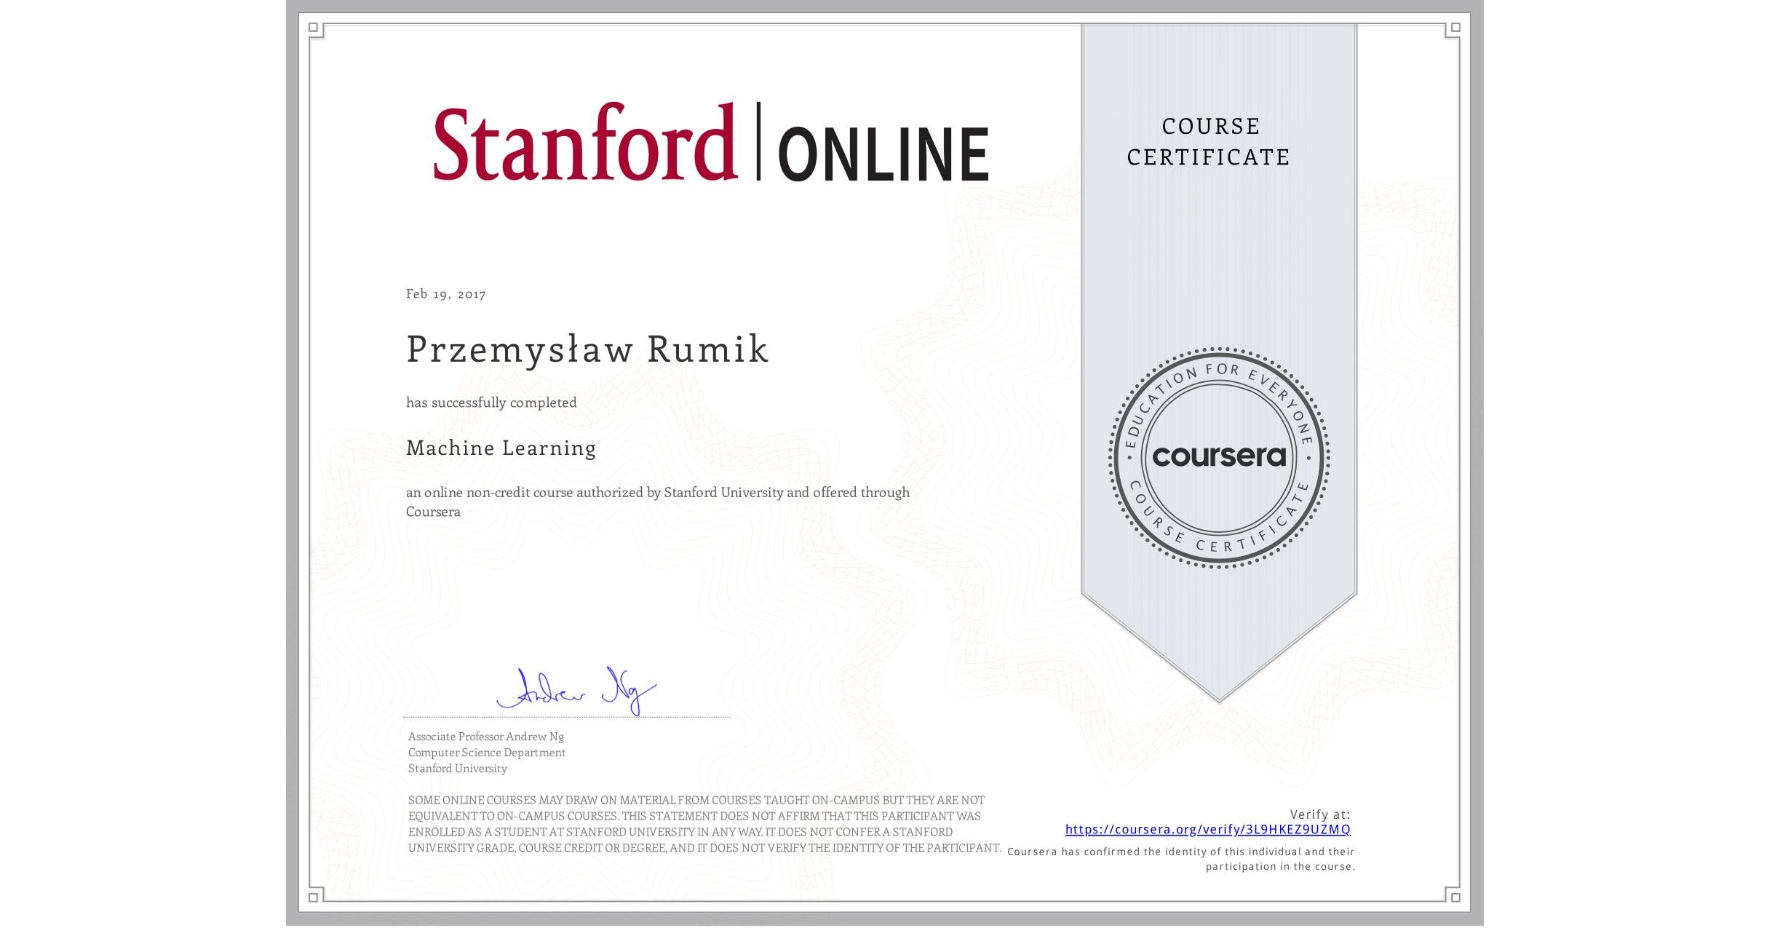 View certificate for Przemysław Rumik, Machine Learning, an online non-credit course authorized by Stanford University and offered through Coursera